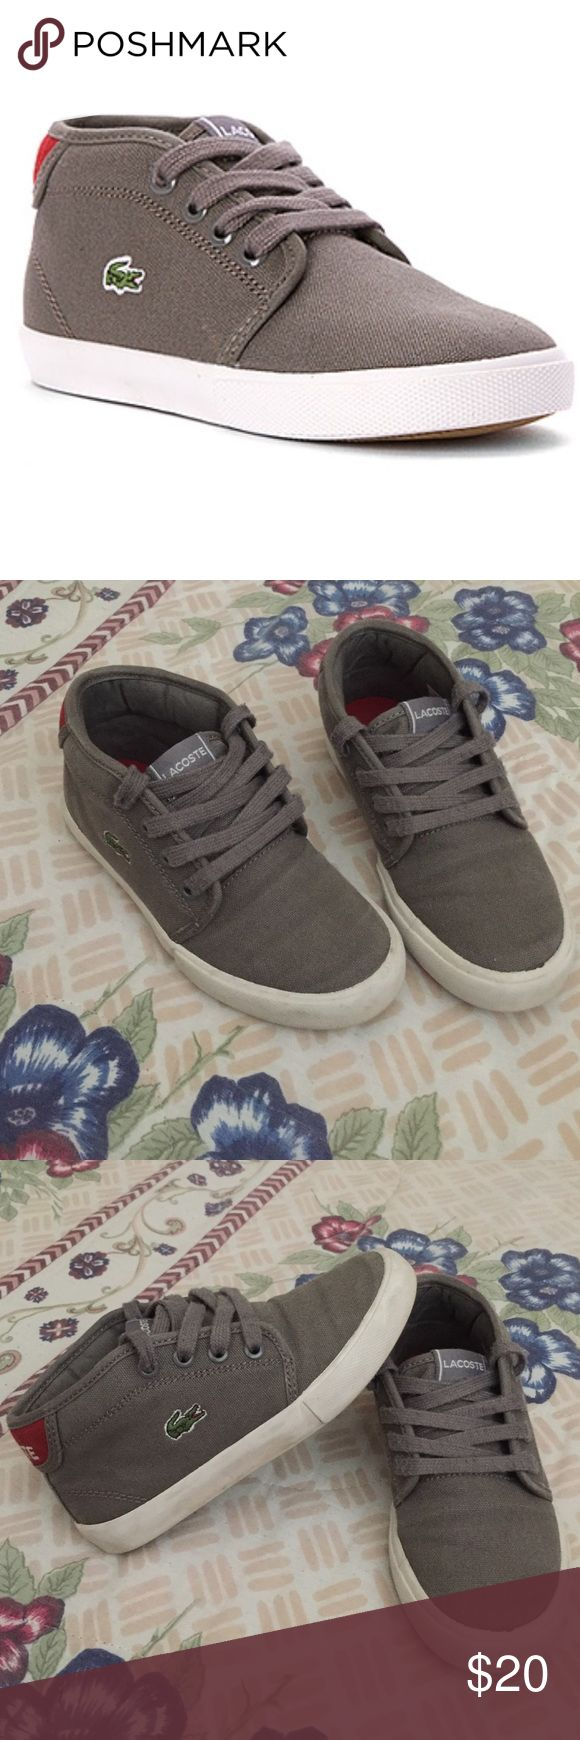 ‼️1 HR SALE‼️ Lacoste Ampthill Mid Sneaker Toddler Very well taken care of sneakers. Faux leather upper, Cushioned footbed, rubber Outsole. No holes Lacoste Shoes Sneakers